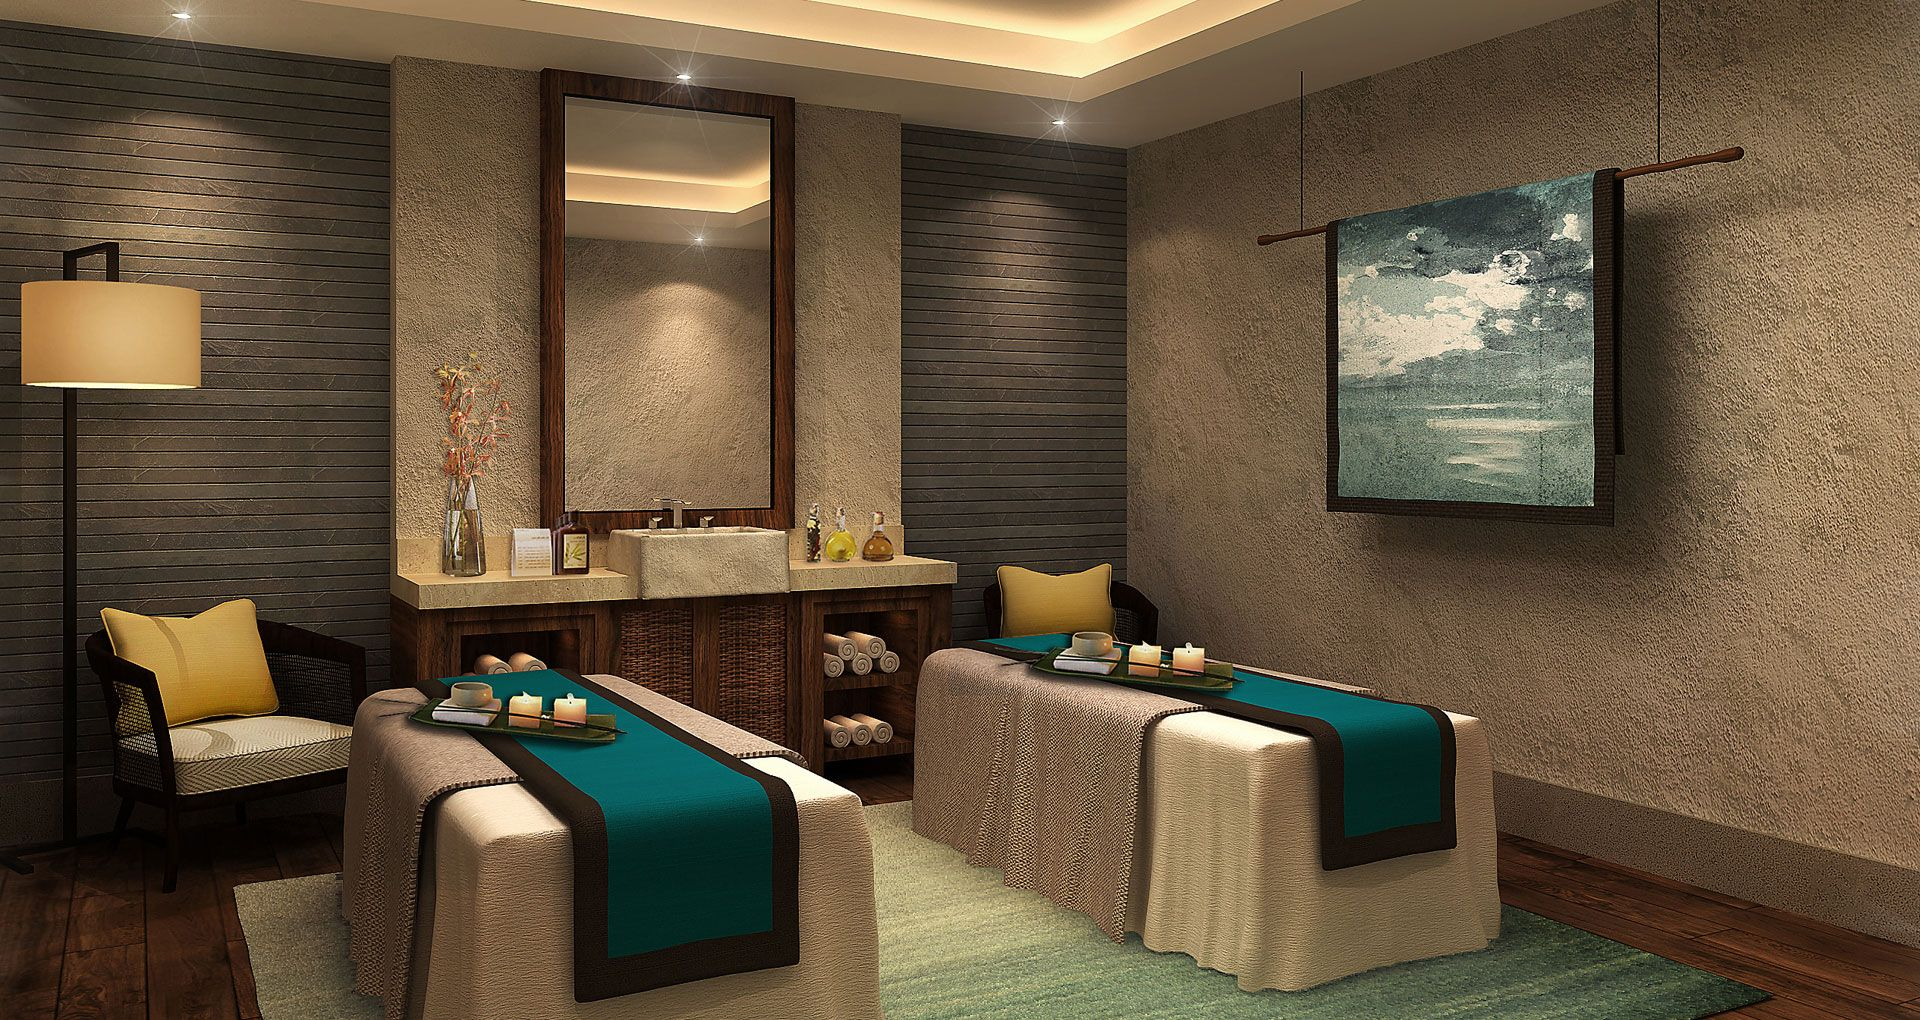 Zhangzhou half moon hill hot spring resort spa interior for Interieur design salon